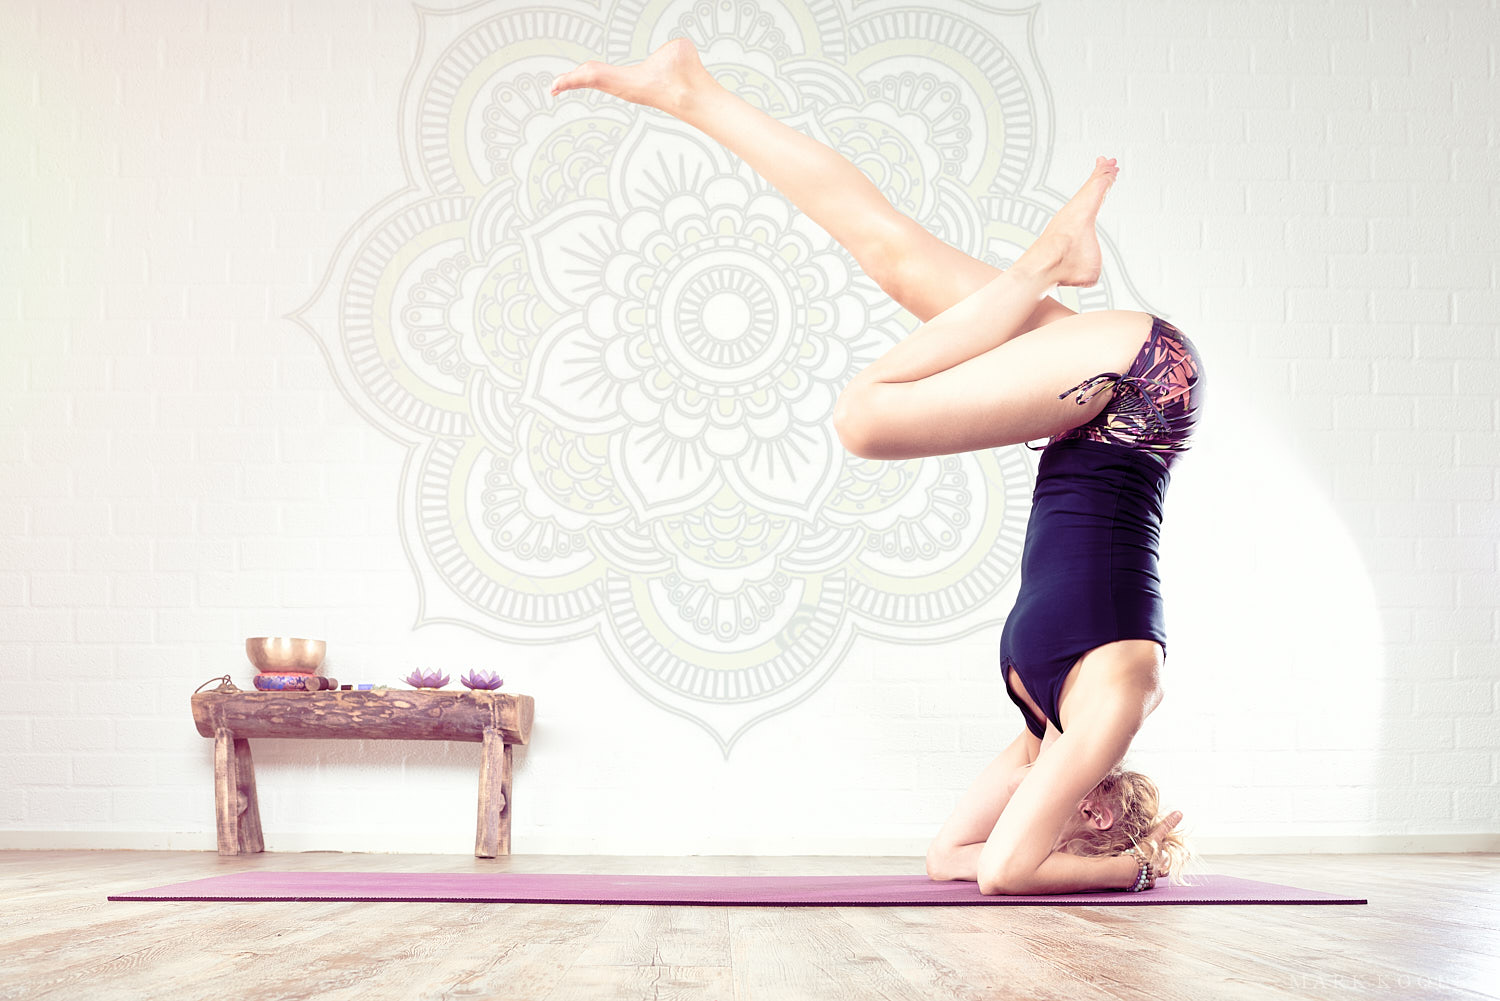 Professional photoshoot at yoga studio with female yogi Mandy Beun by Mark Koolen luxury corporate sport photography